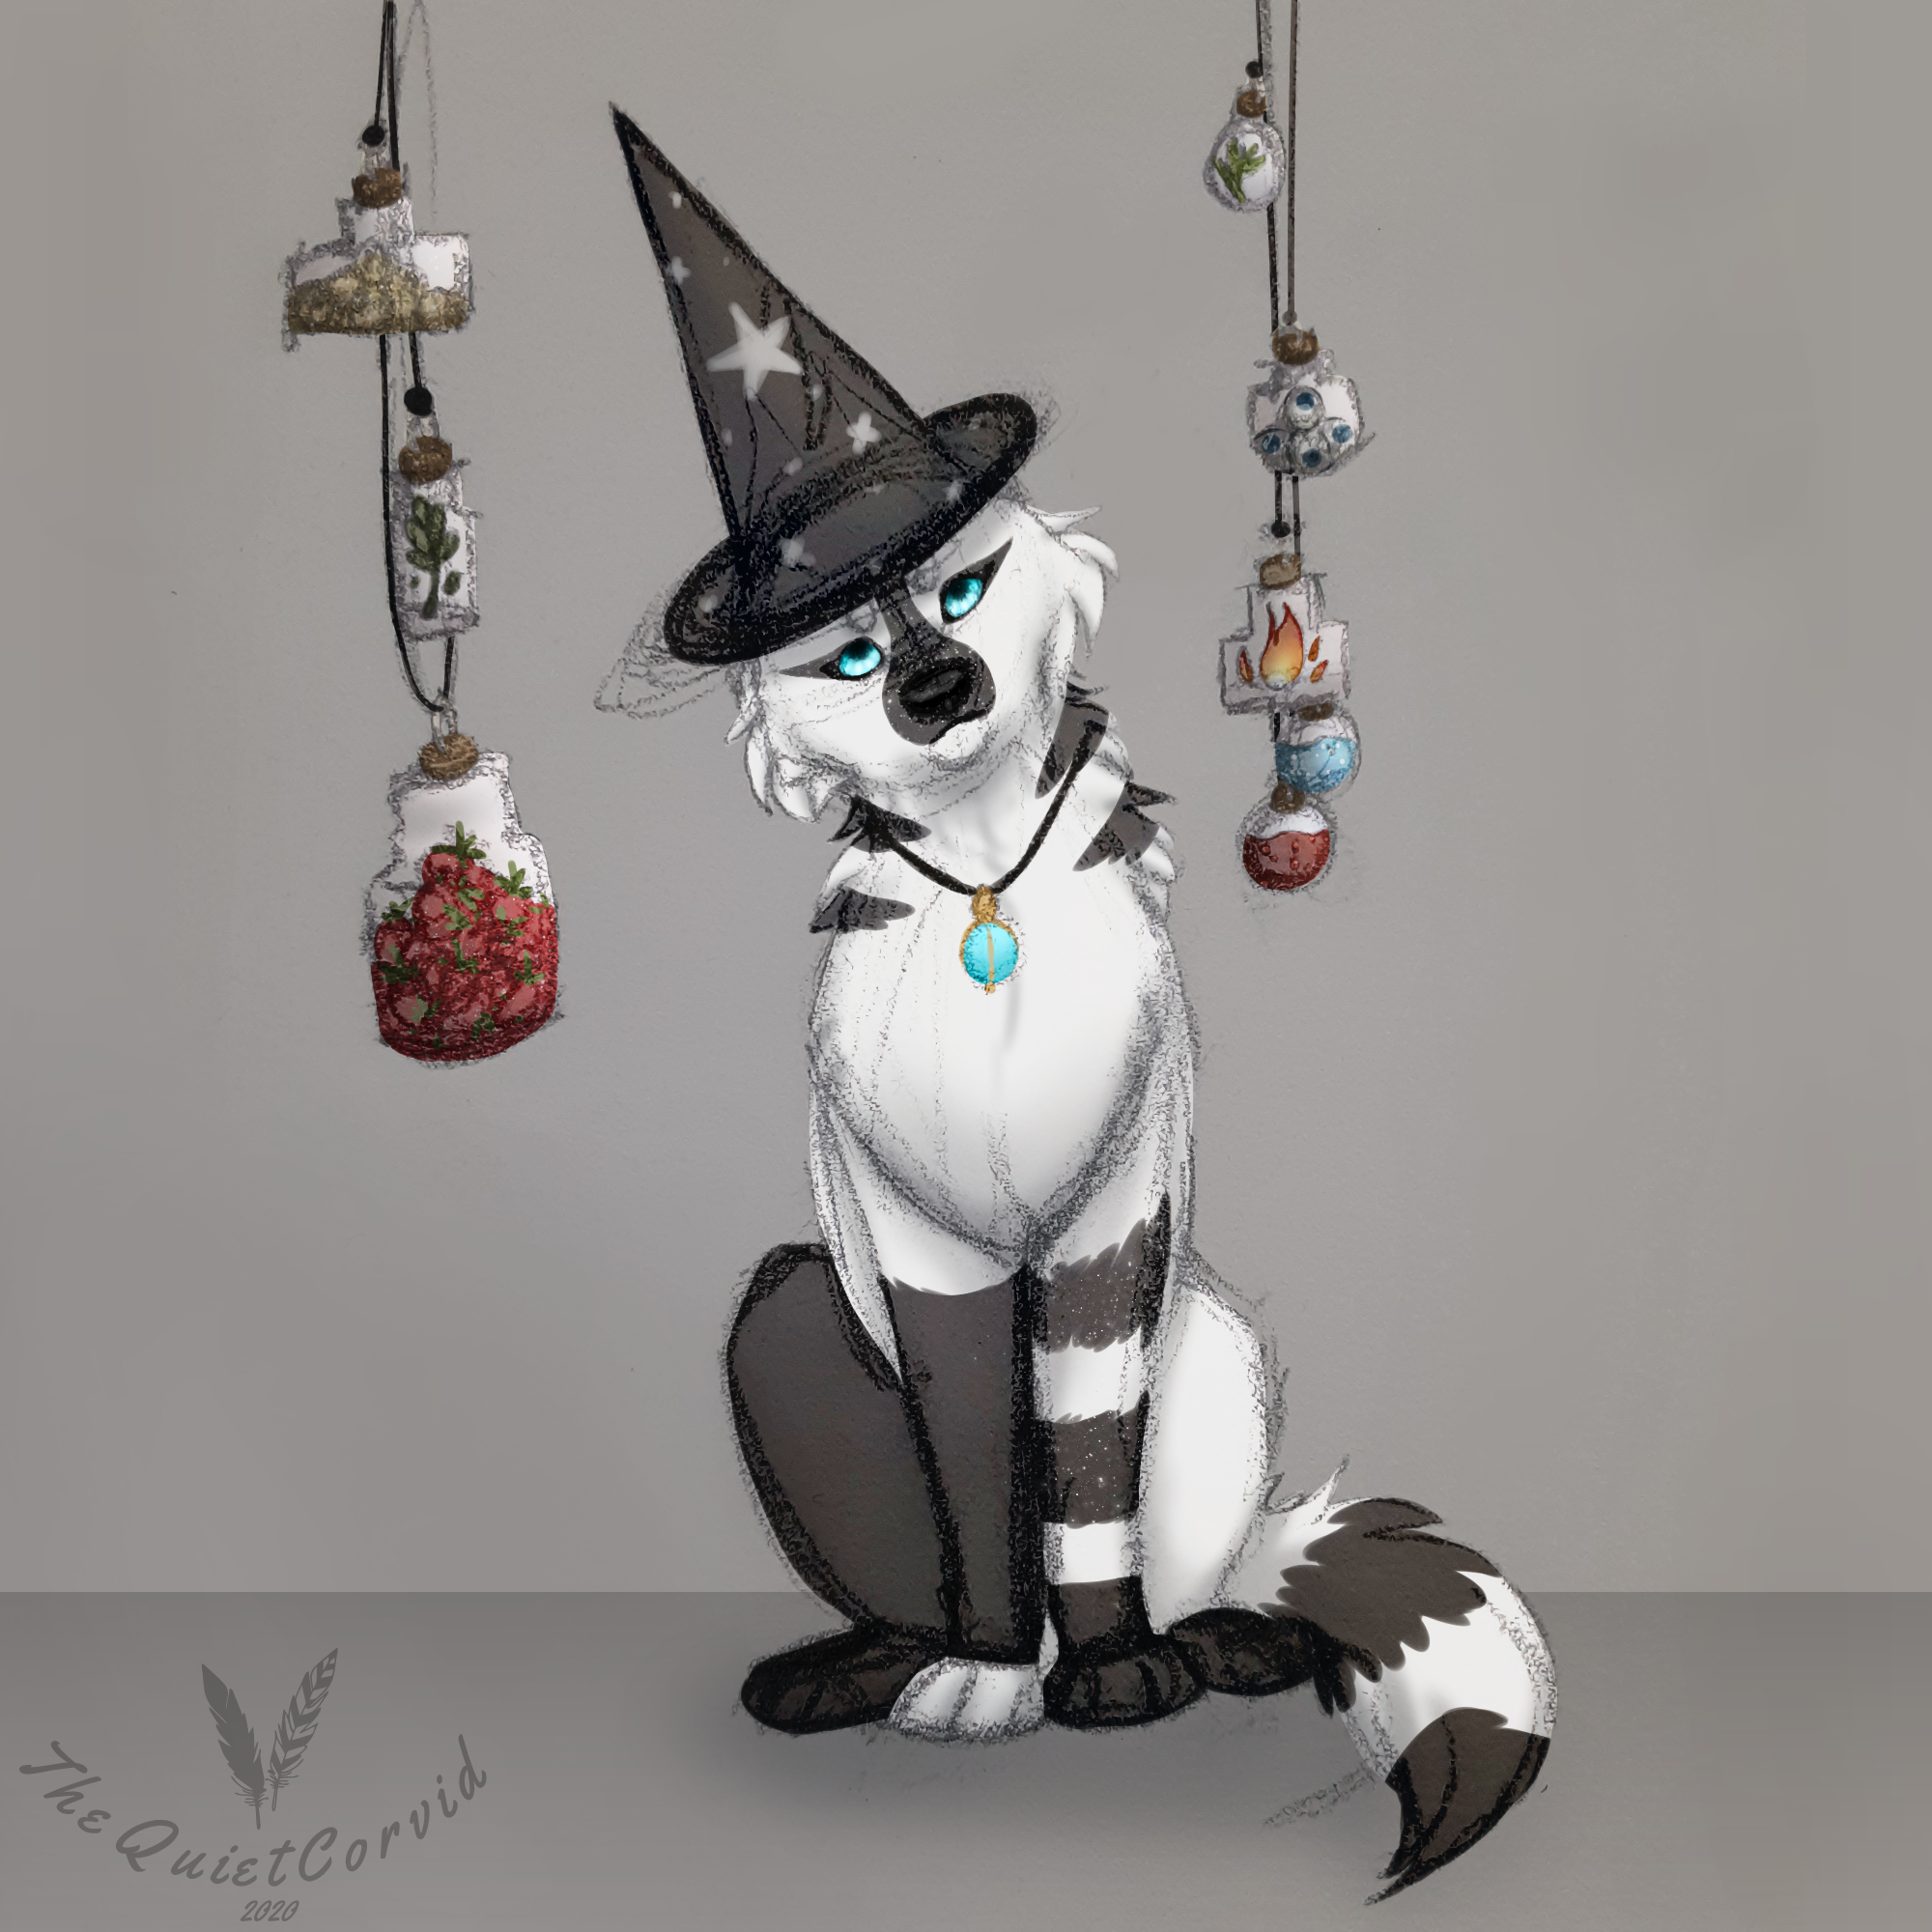 Spooktober | Day 7 - Witch